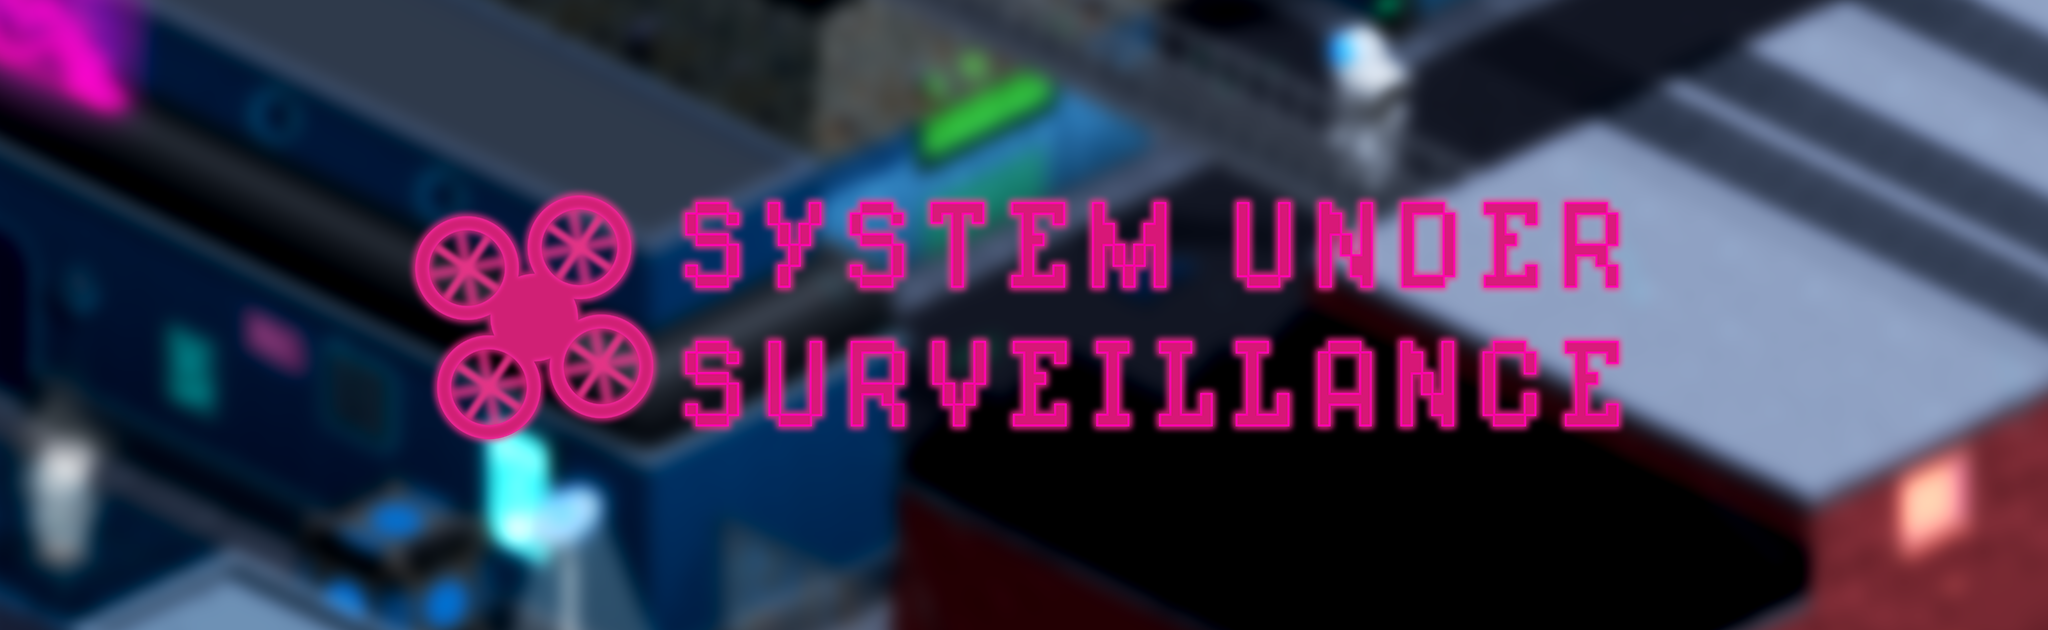 Logo and title screen of System Under Surveillance